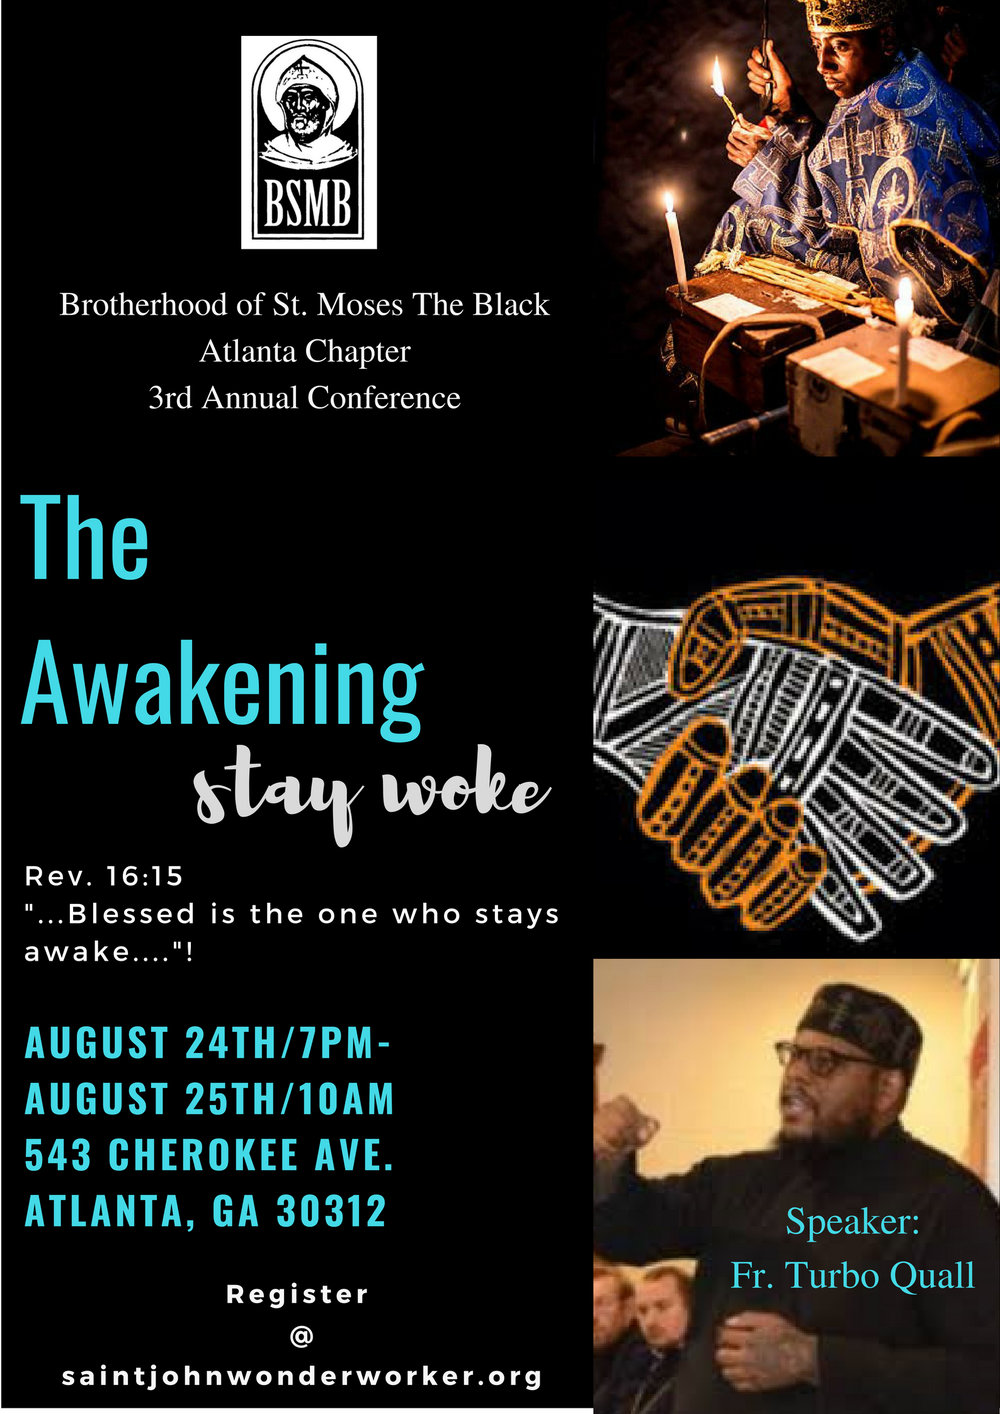 Awake, O sleeper, and arise from the dead, and Christ will shine upon thee! -  Date: Friday, August 24th and Saturday, 25thTimes: Friday starting at 7:00pm and  Saturday starting at 10:00amAdmission:Free!Taste of Africa Lunch: Free!